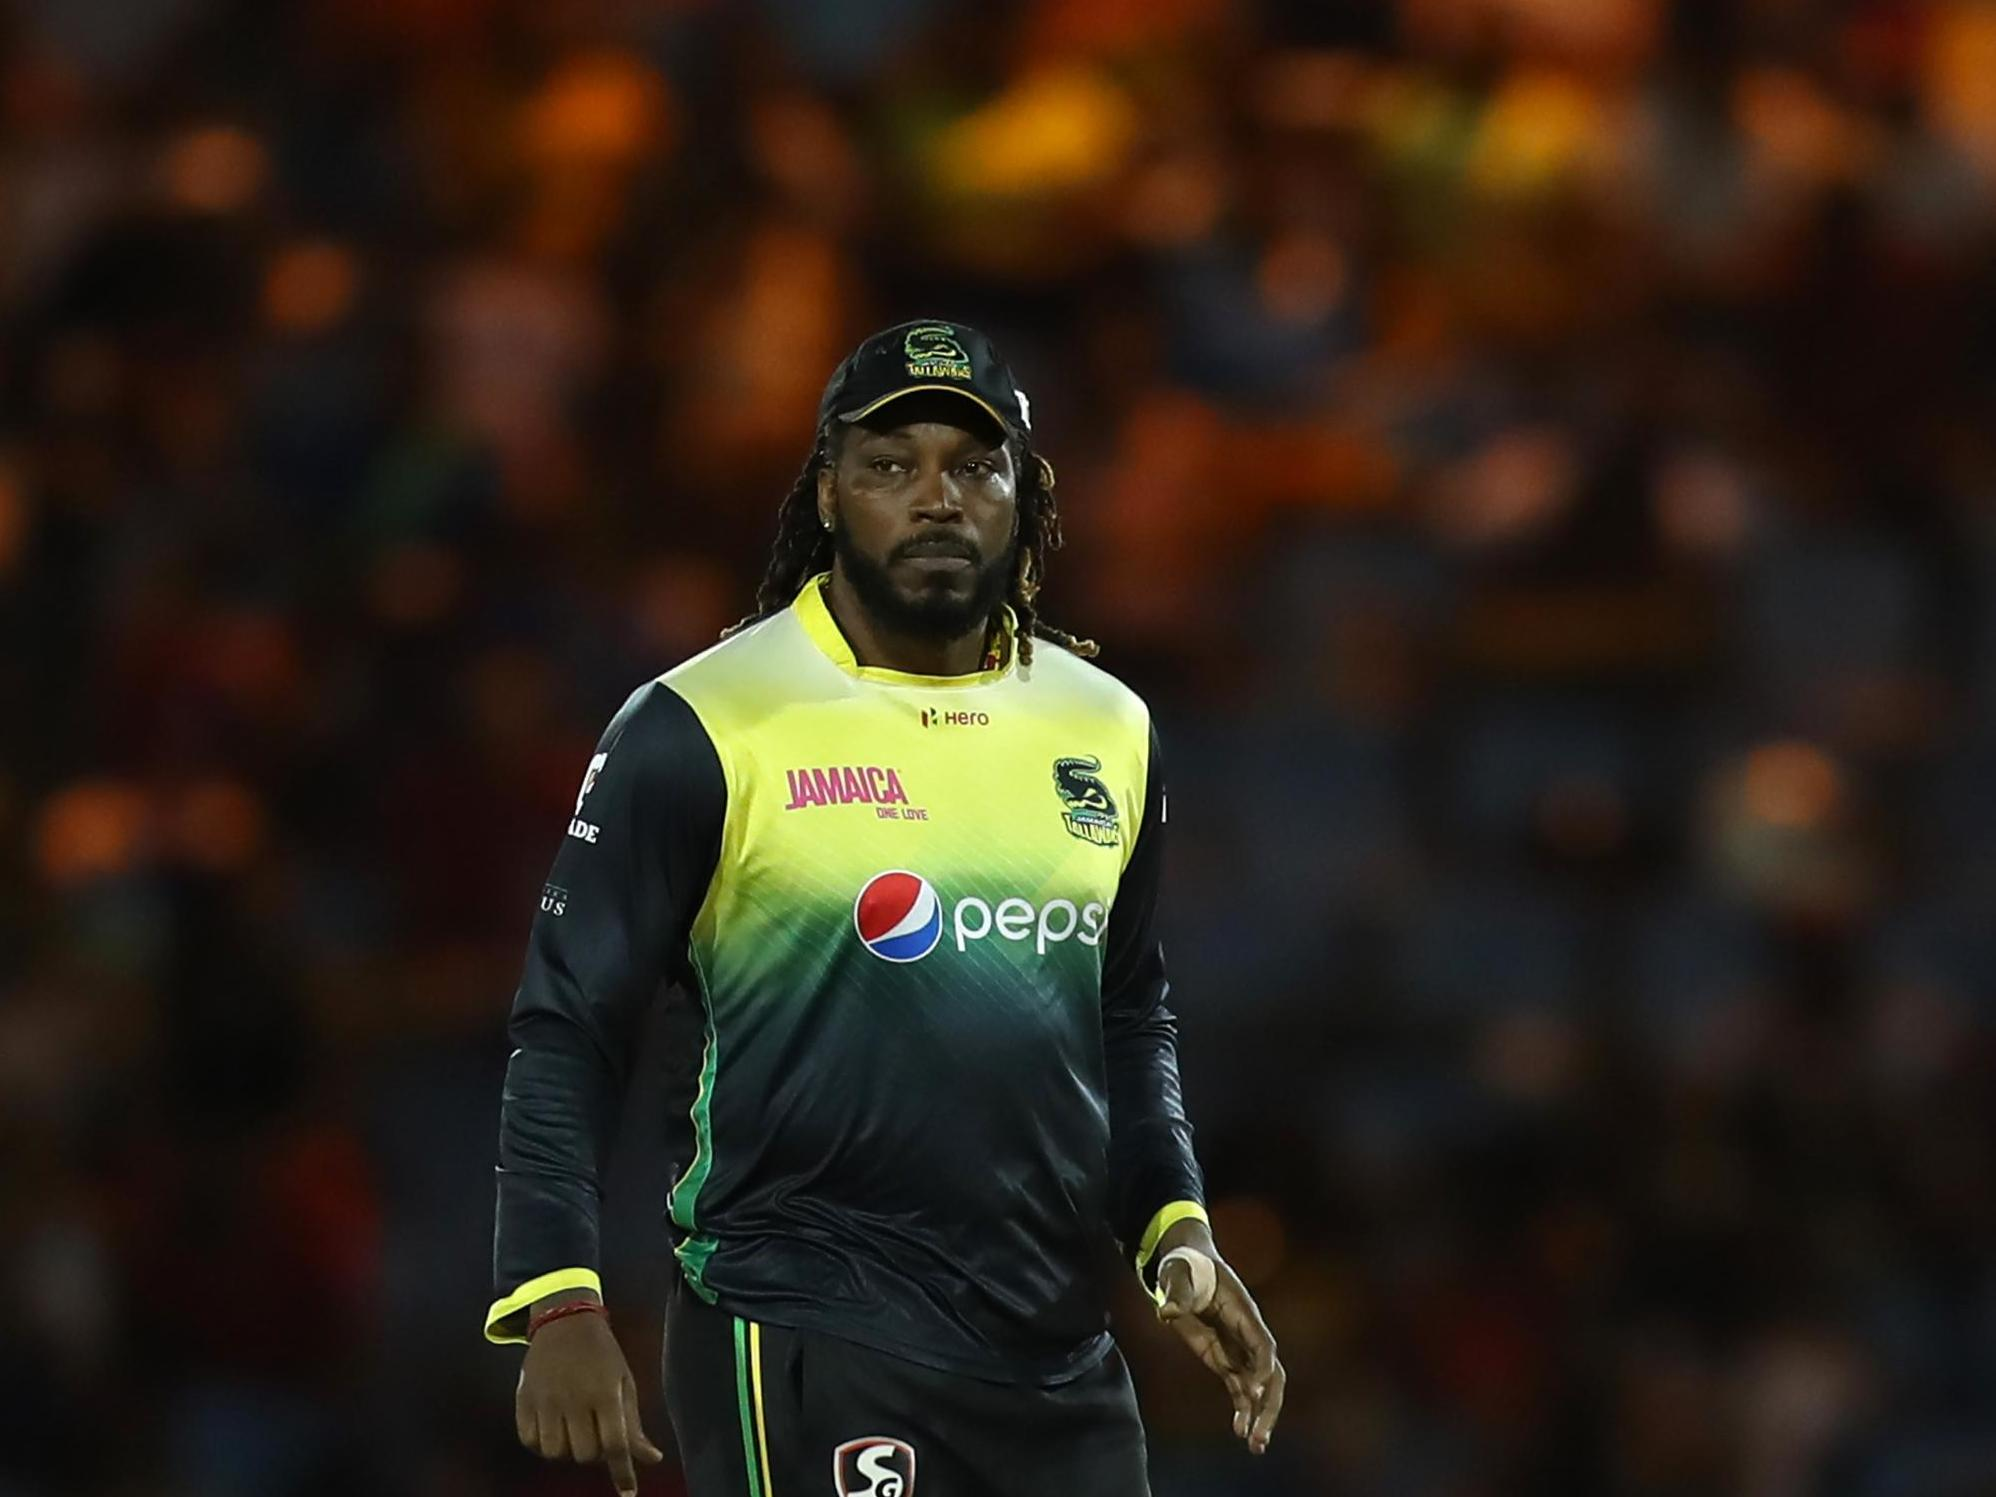 The Hundred: Chris Gayle and Steve Smith among most expensive players for draft, ECB announce